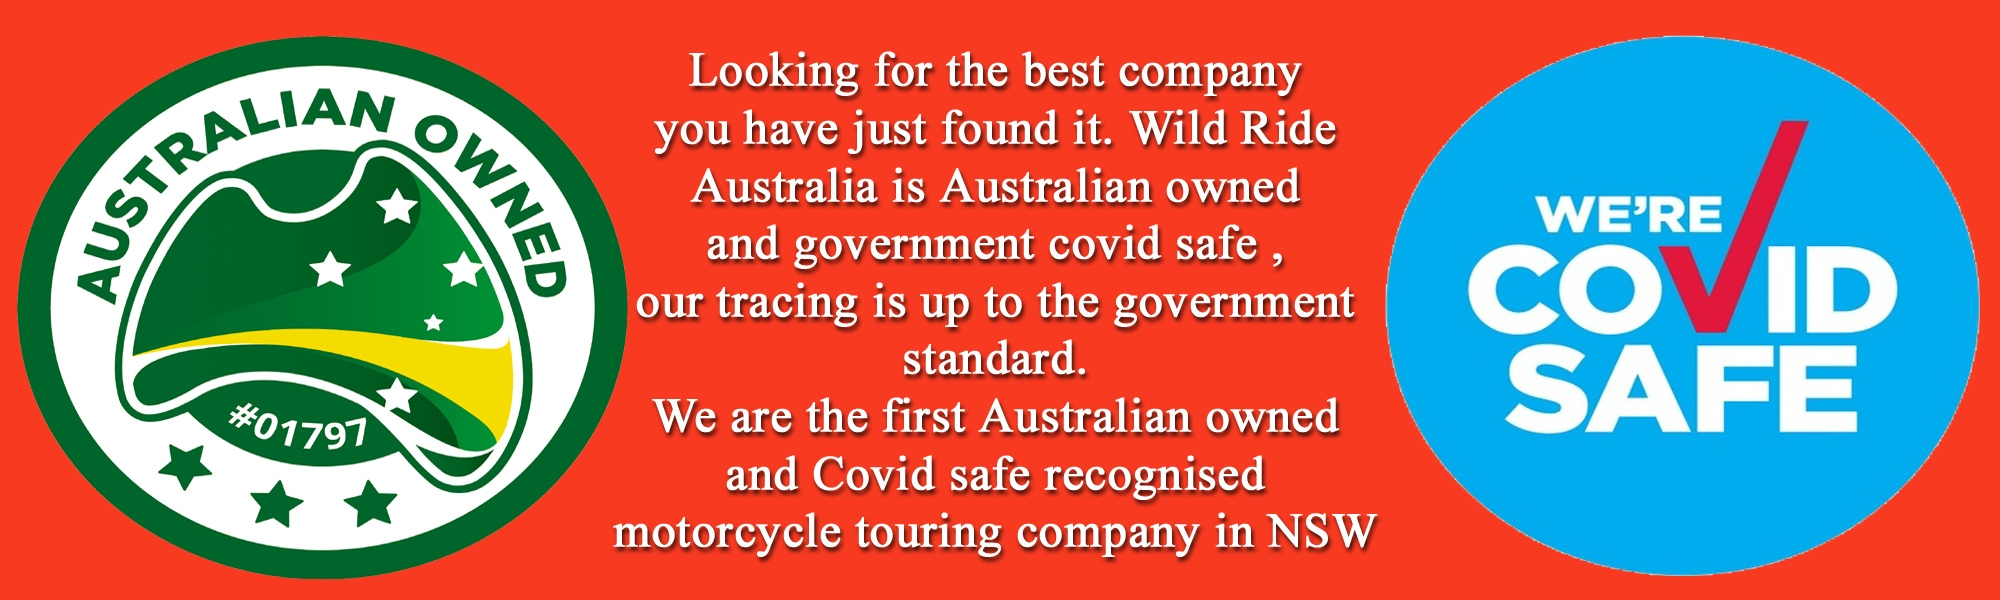 Australian owned Covid safe